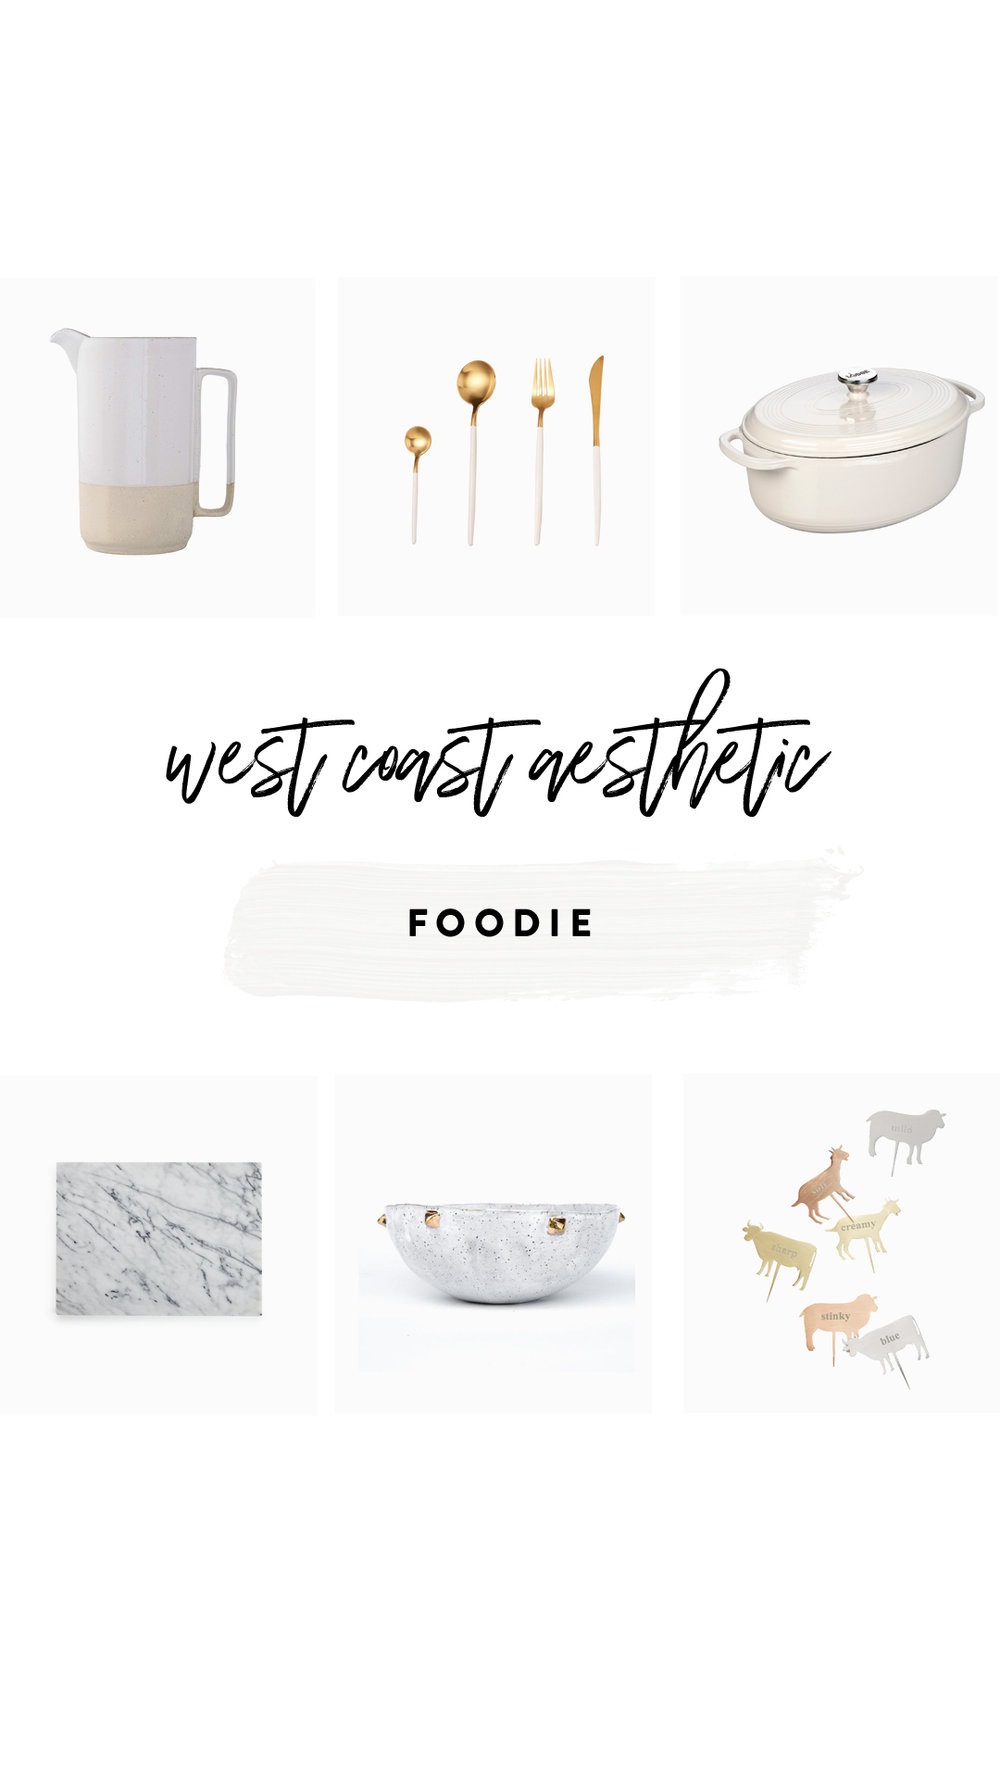 1.   Pitcher   | 2.   Flatware   | 3.   Dutch Oven   | 4.   Marble Pastry Slab   | 5.   Accent Bowl   | 6.   Cheese Markers